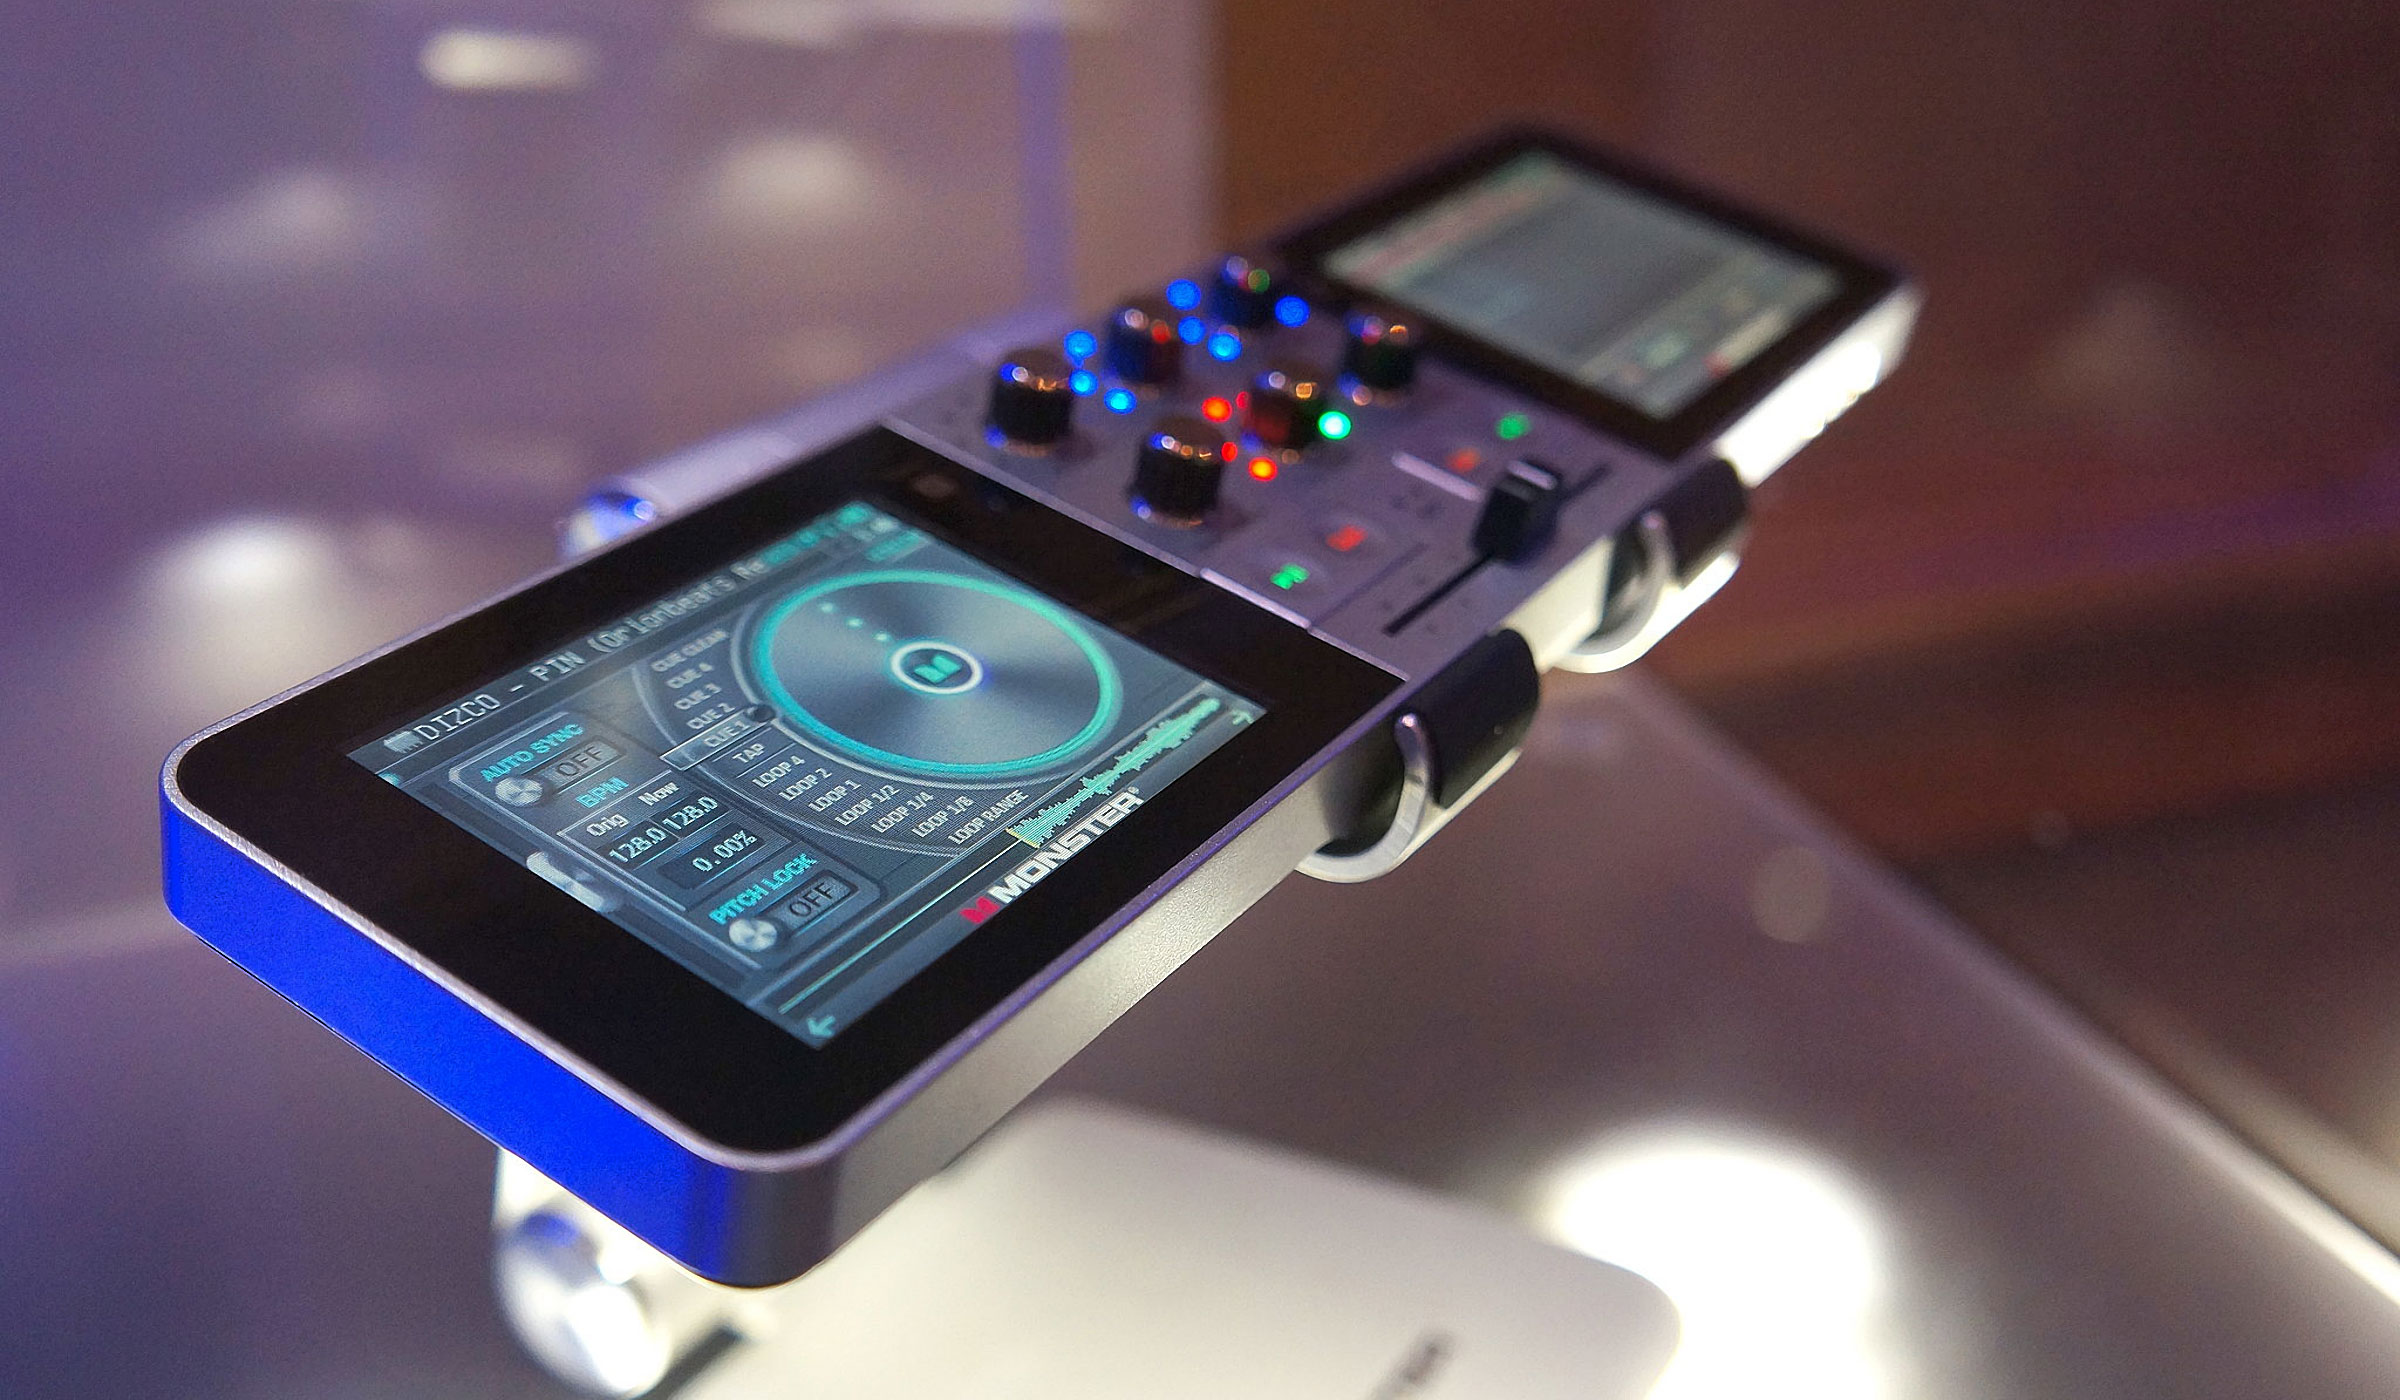 MONSTER GO DJ PORTABLE MIXER DIGITAL TURNTABLE